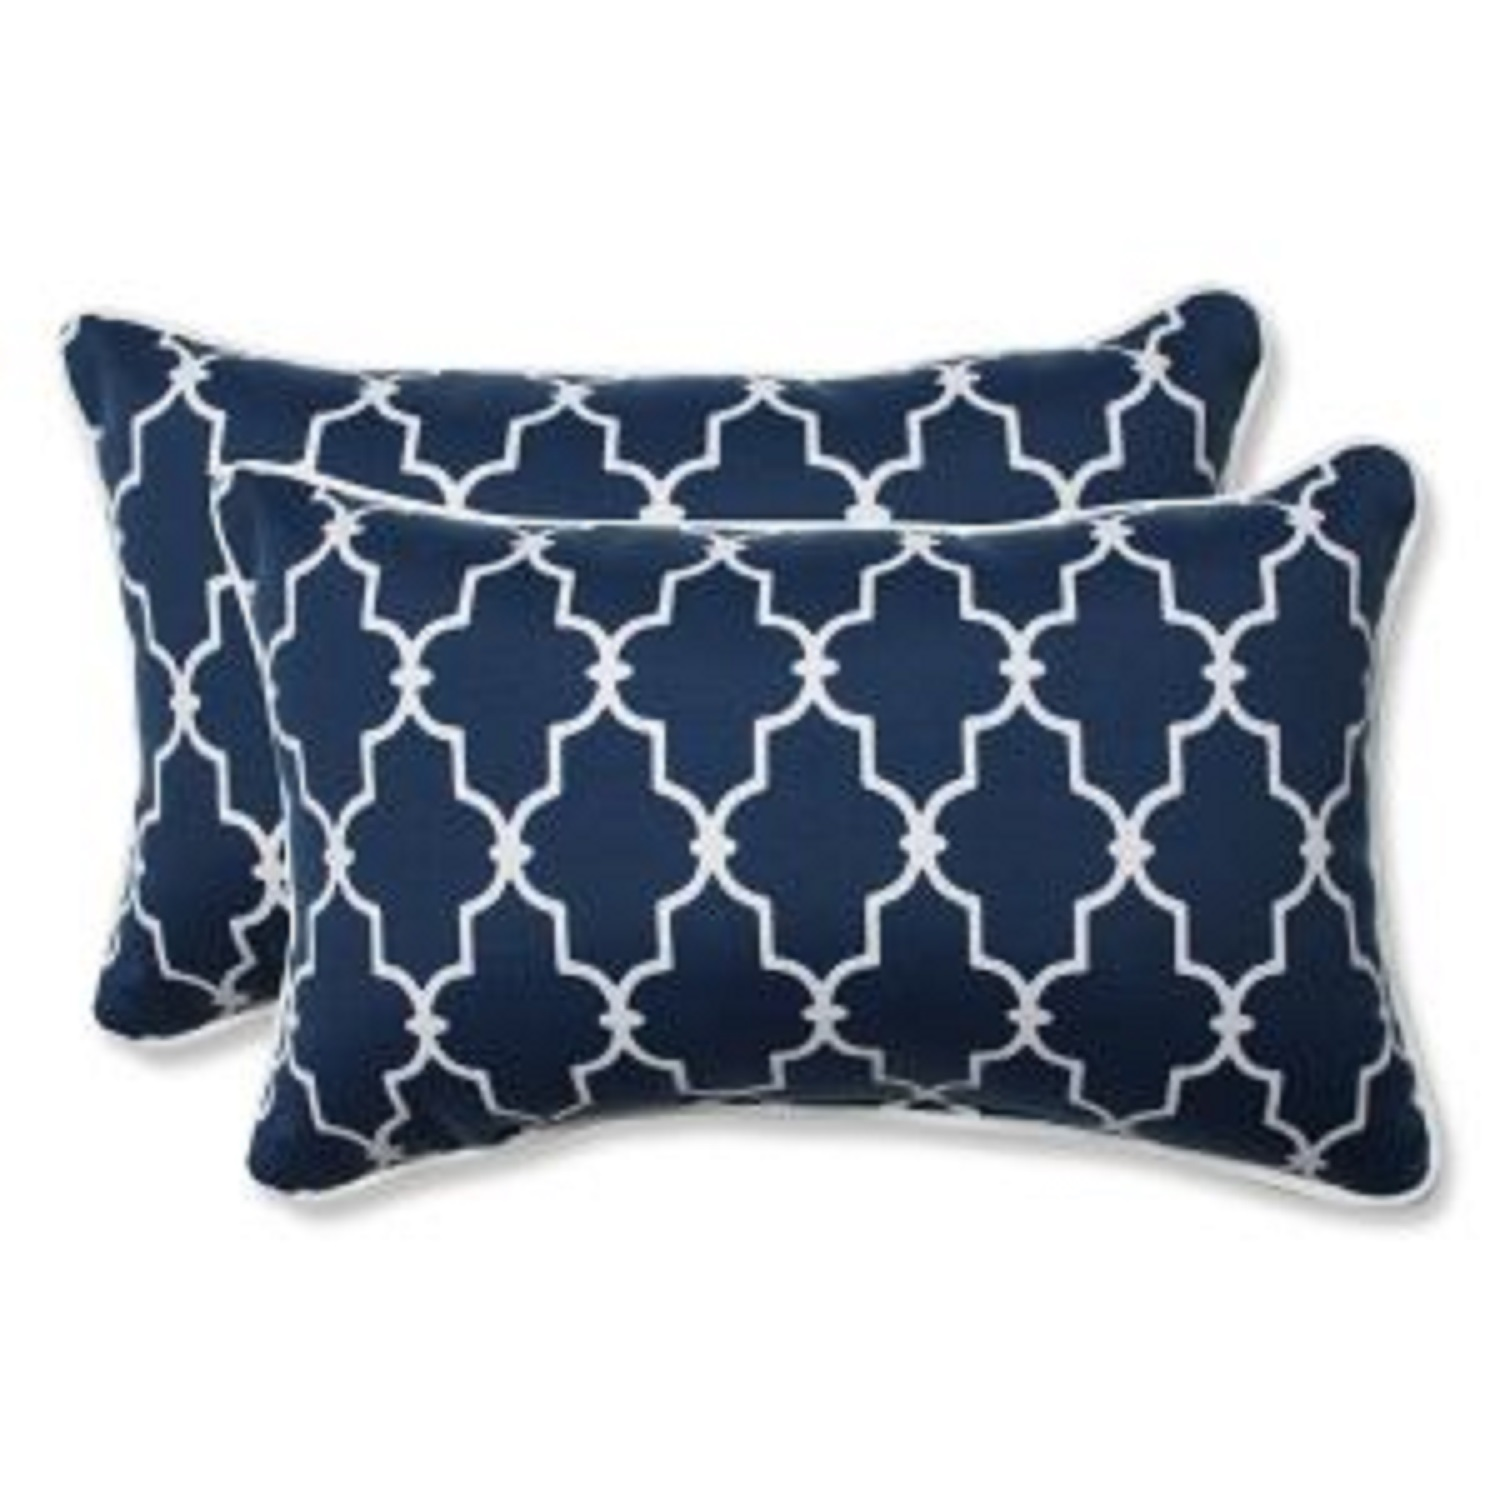 set of 2 moroccan gate navy blue and white rectangular corded throw pillows 18 5